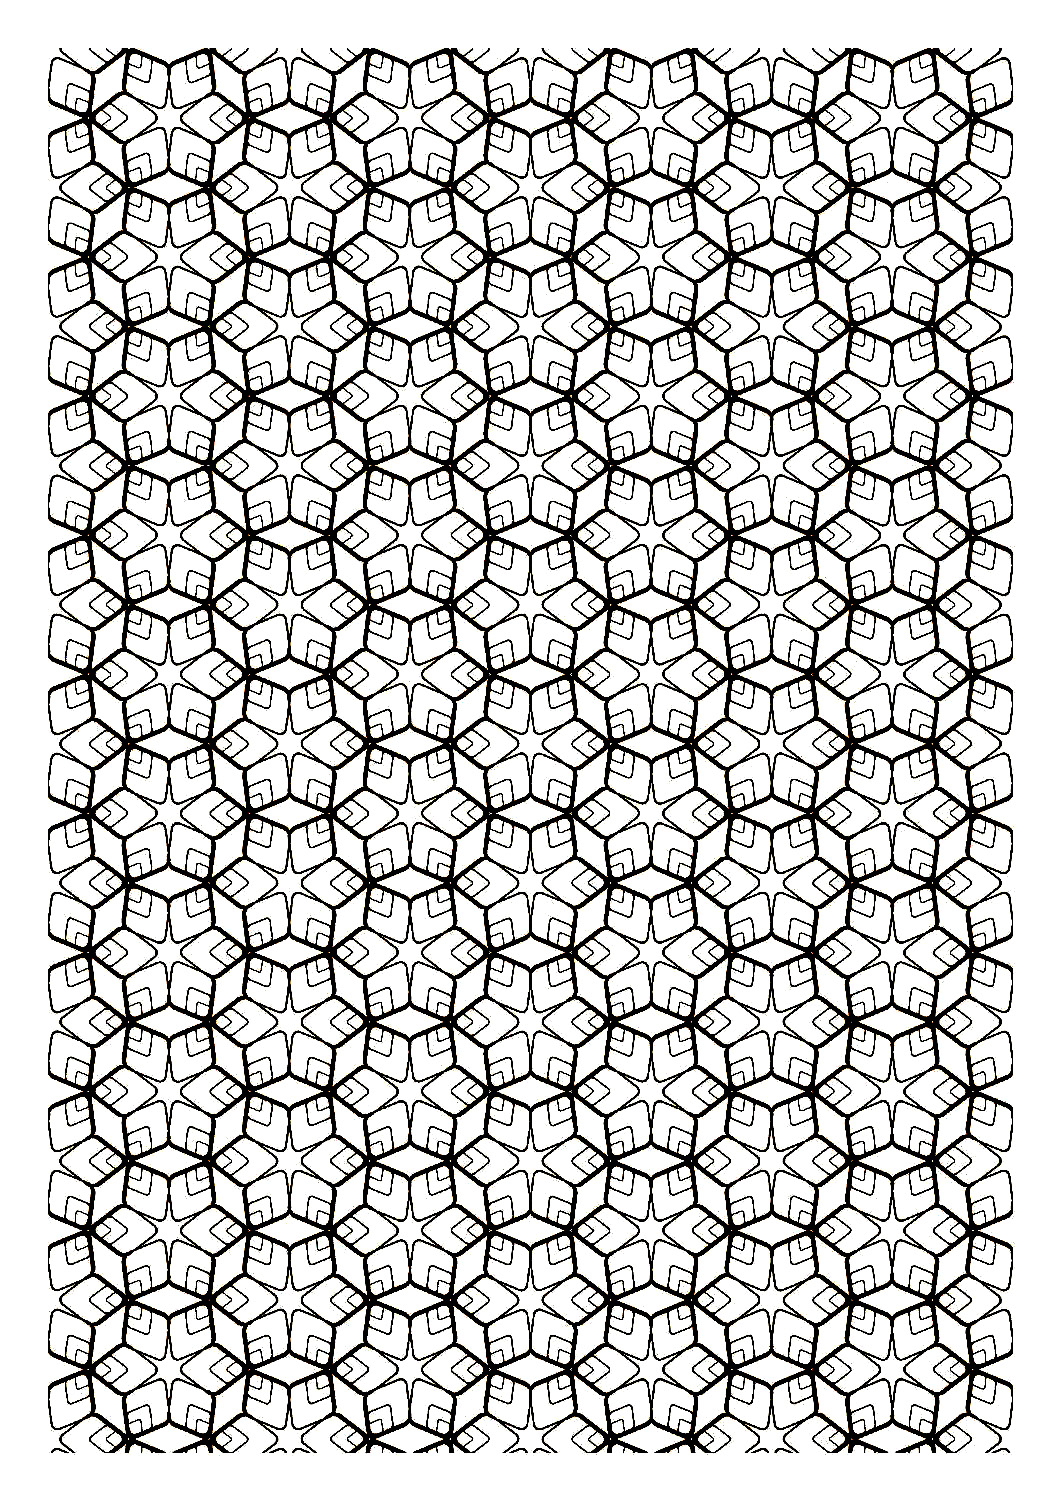 difficult zen symmetry zen and anti stress coloring pages for